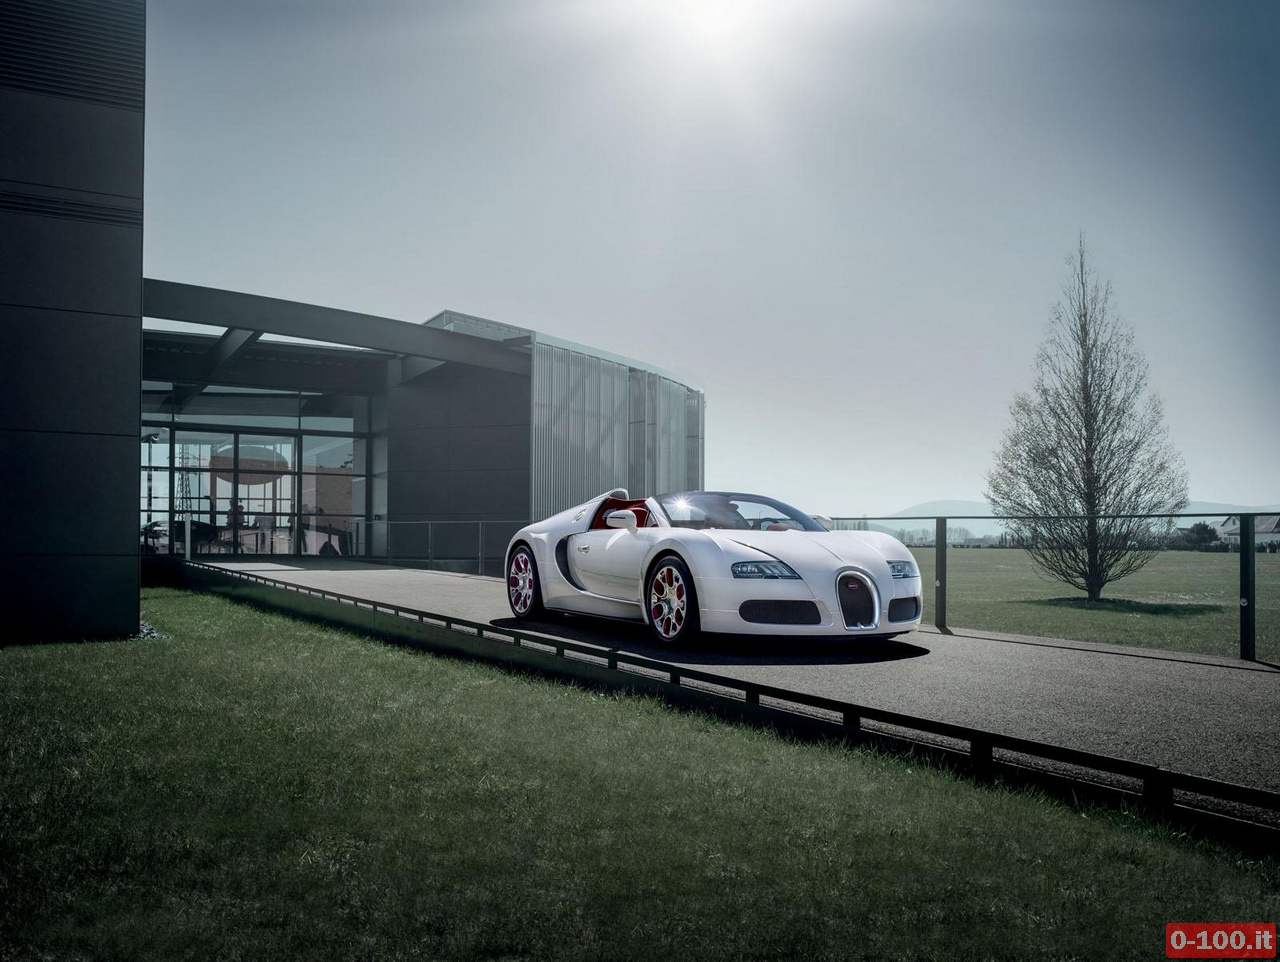 bugatti_veyron_grand_sport_wei-long_2012_0-100_40